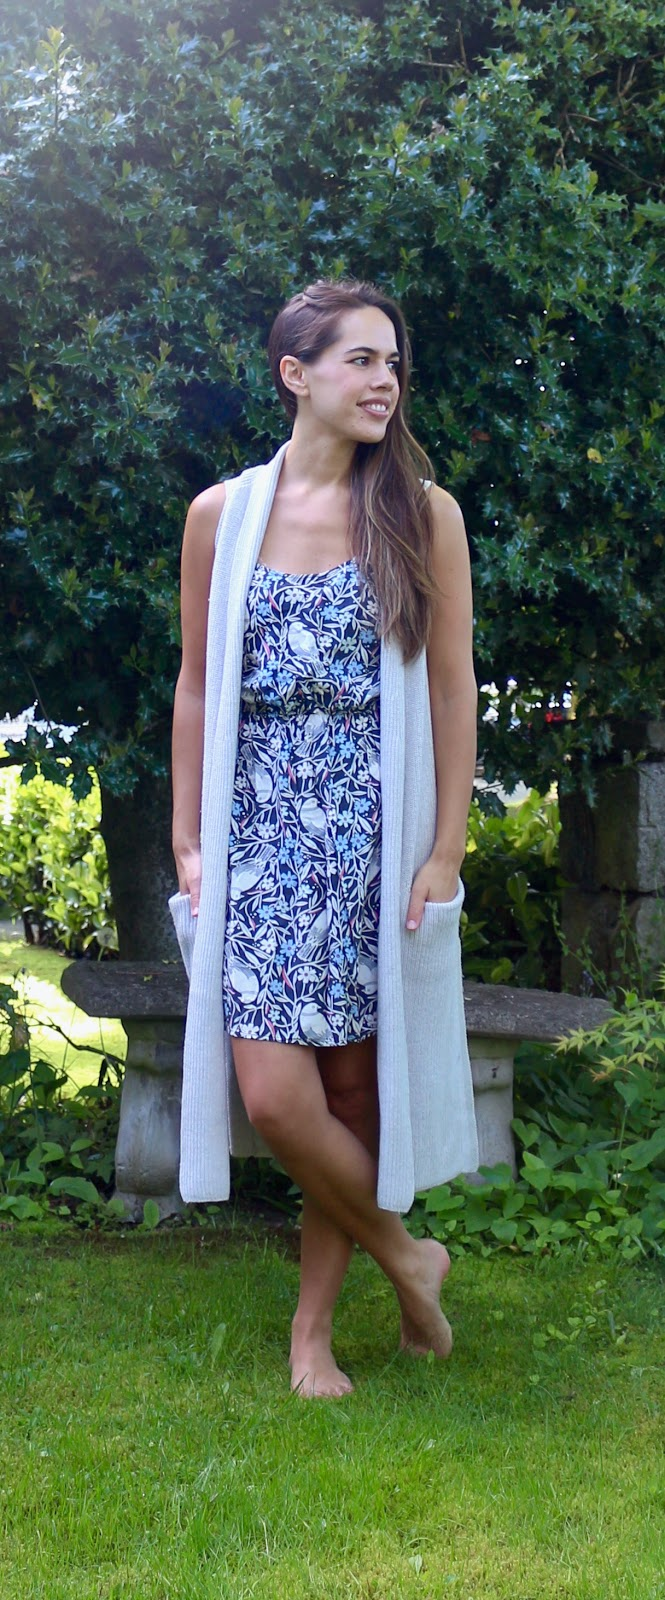 Jules in Flats - Summer Dress with Knit Sweater Vest (Easy Work from Home Outfit)